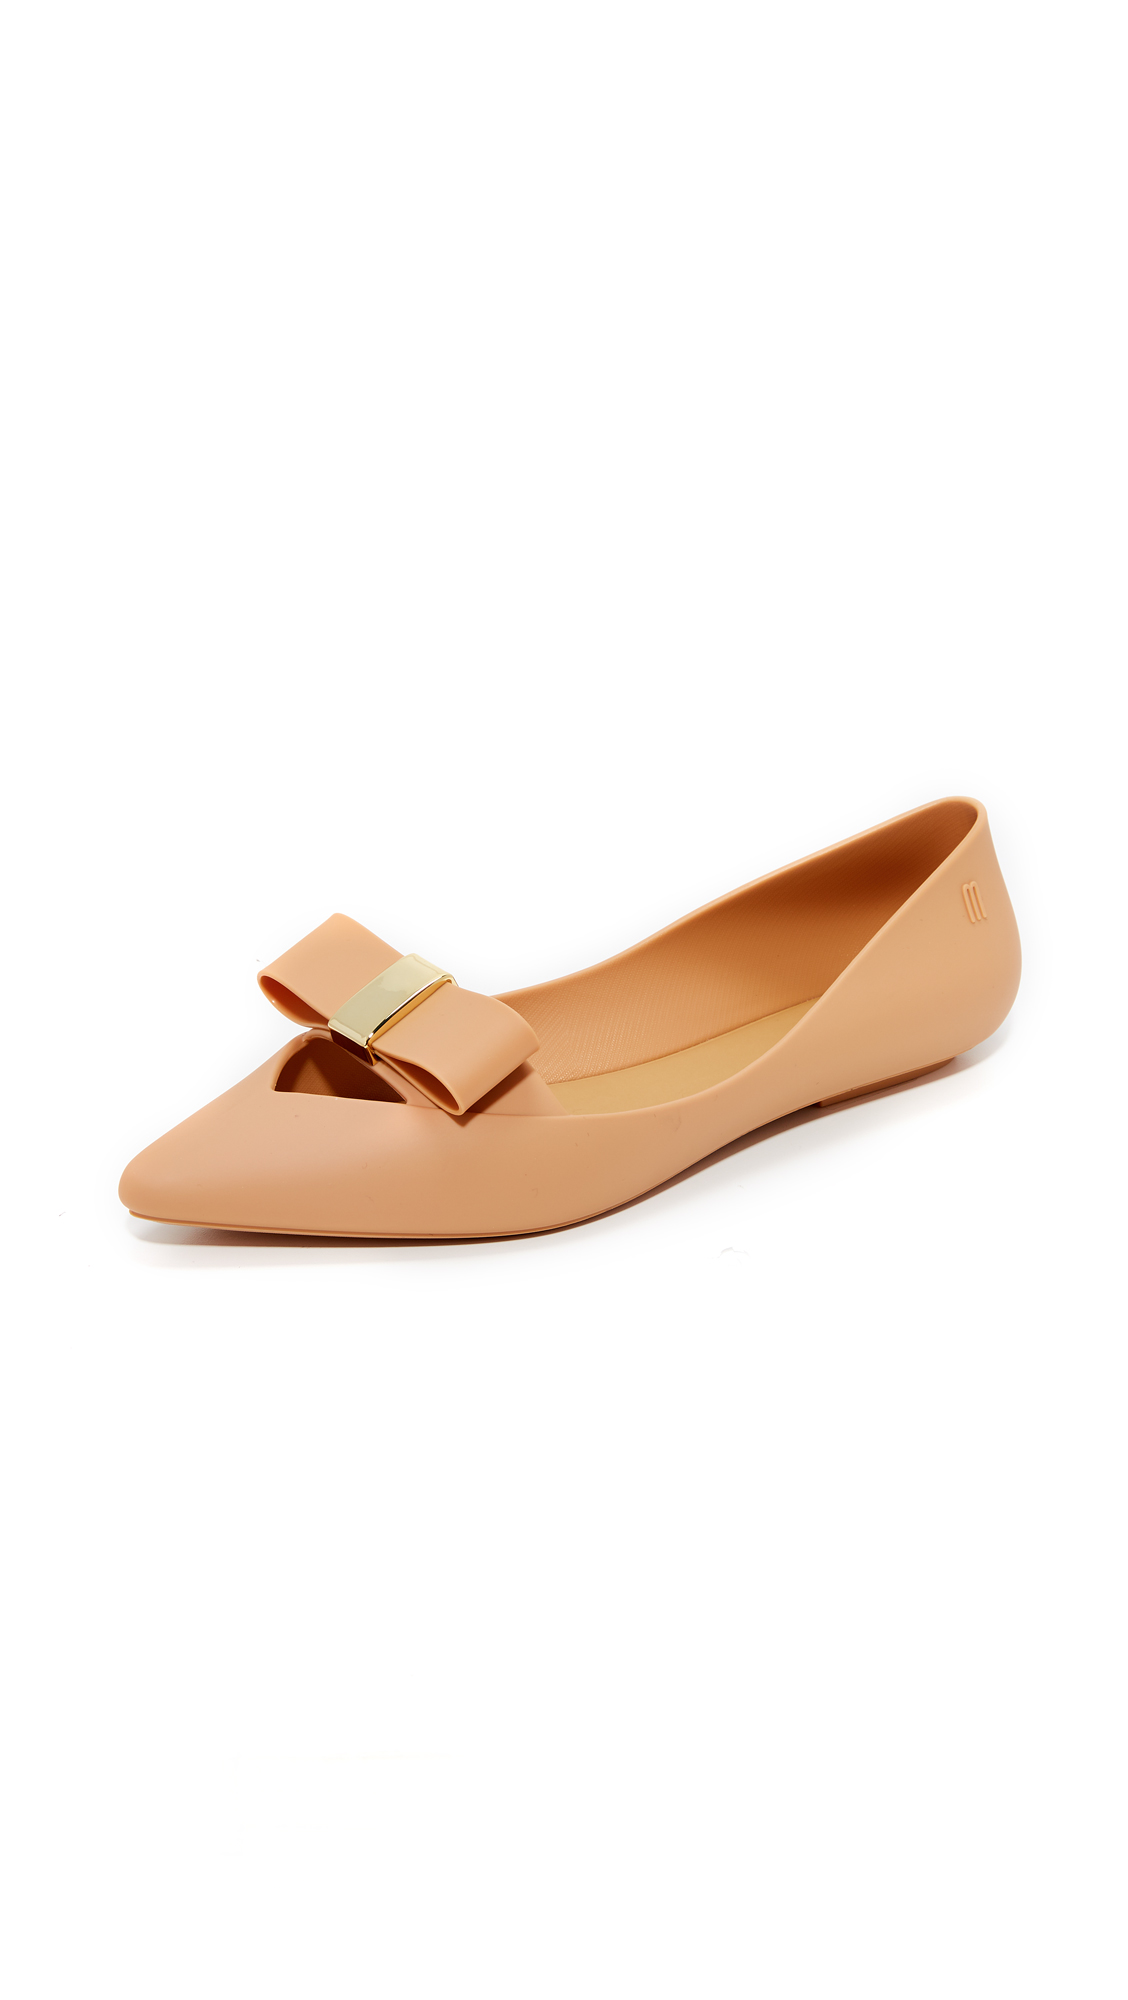 Melissa Maisie II Flats - Light Brown